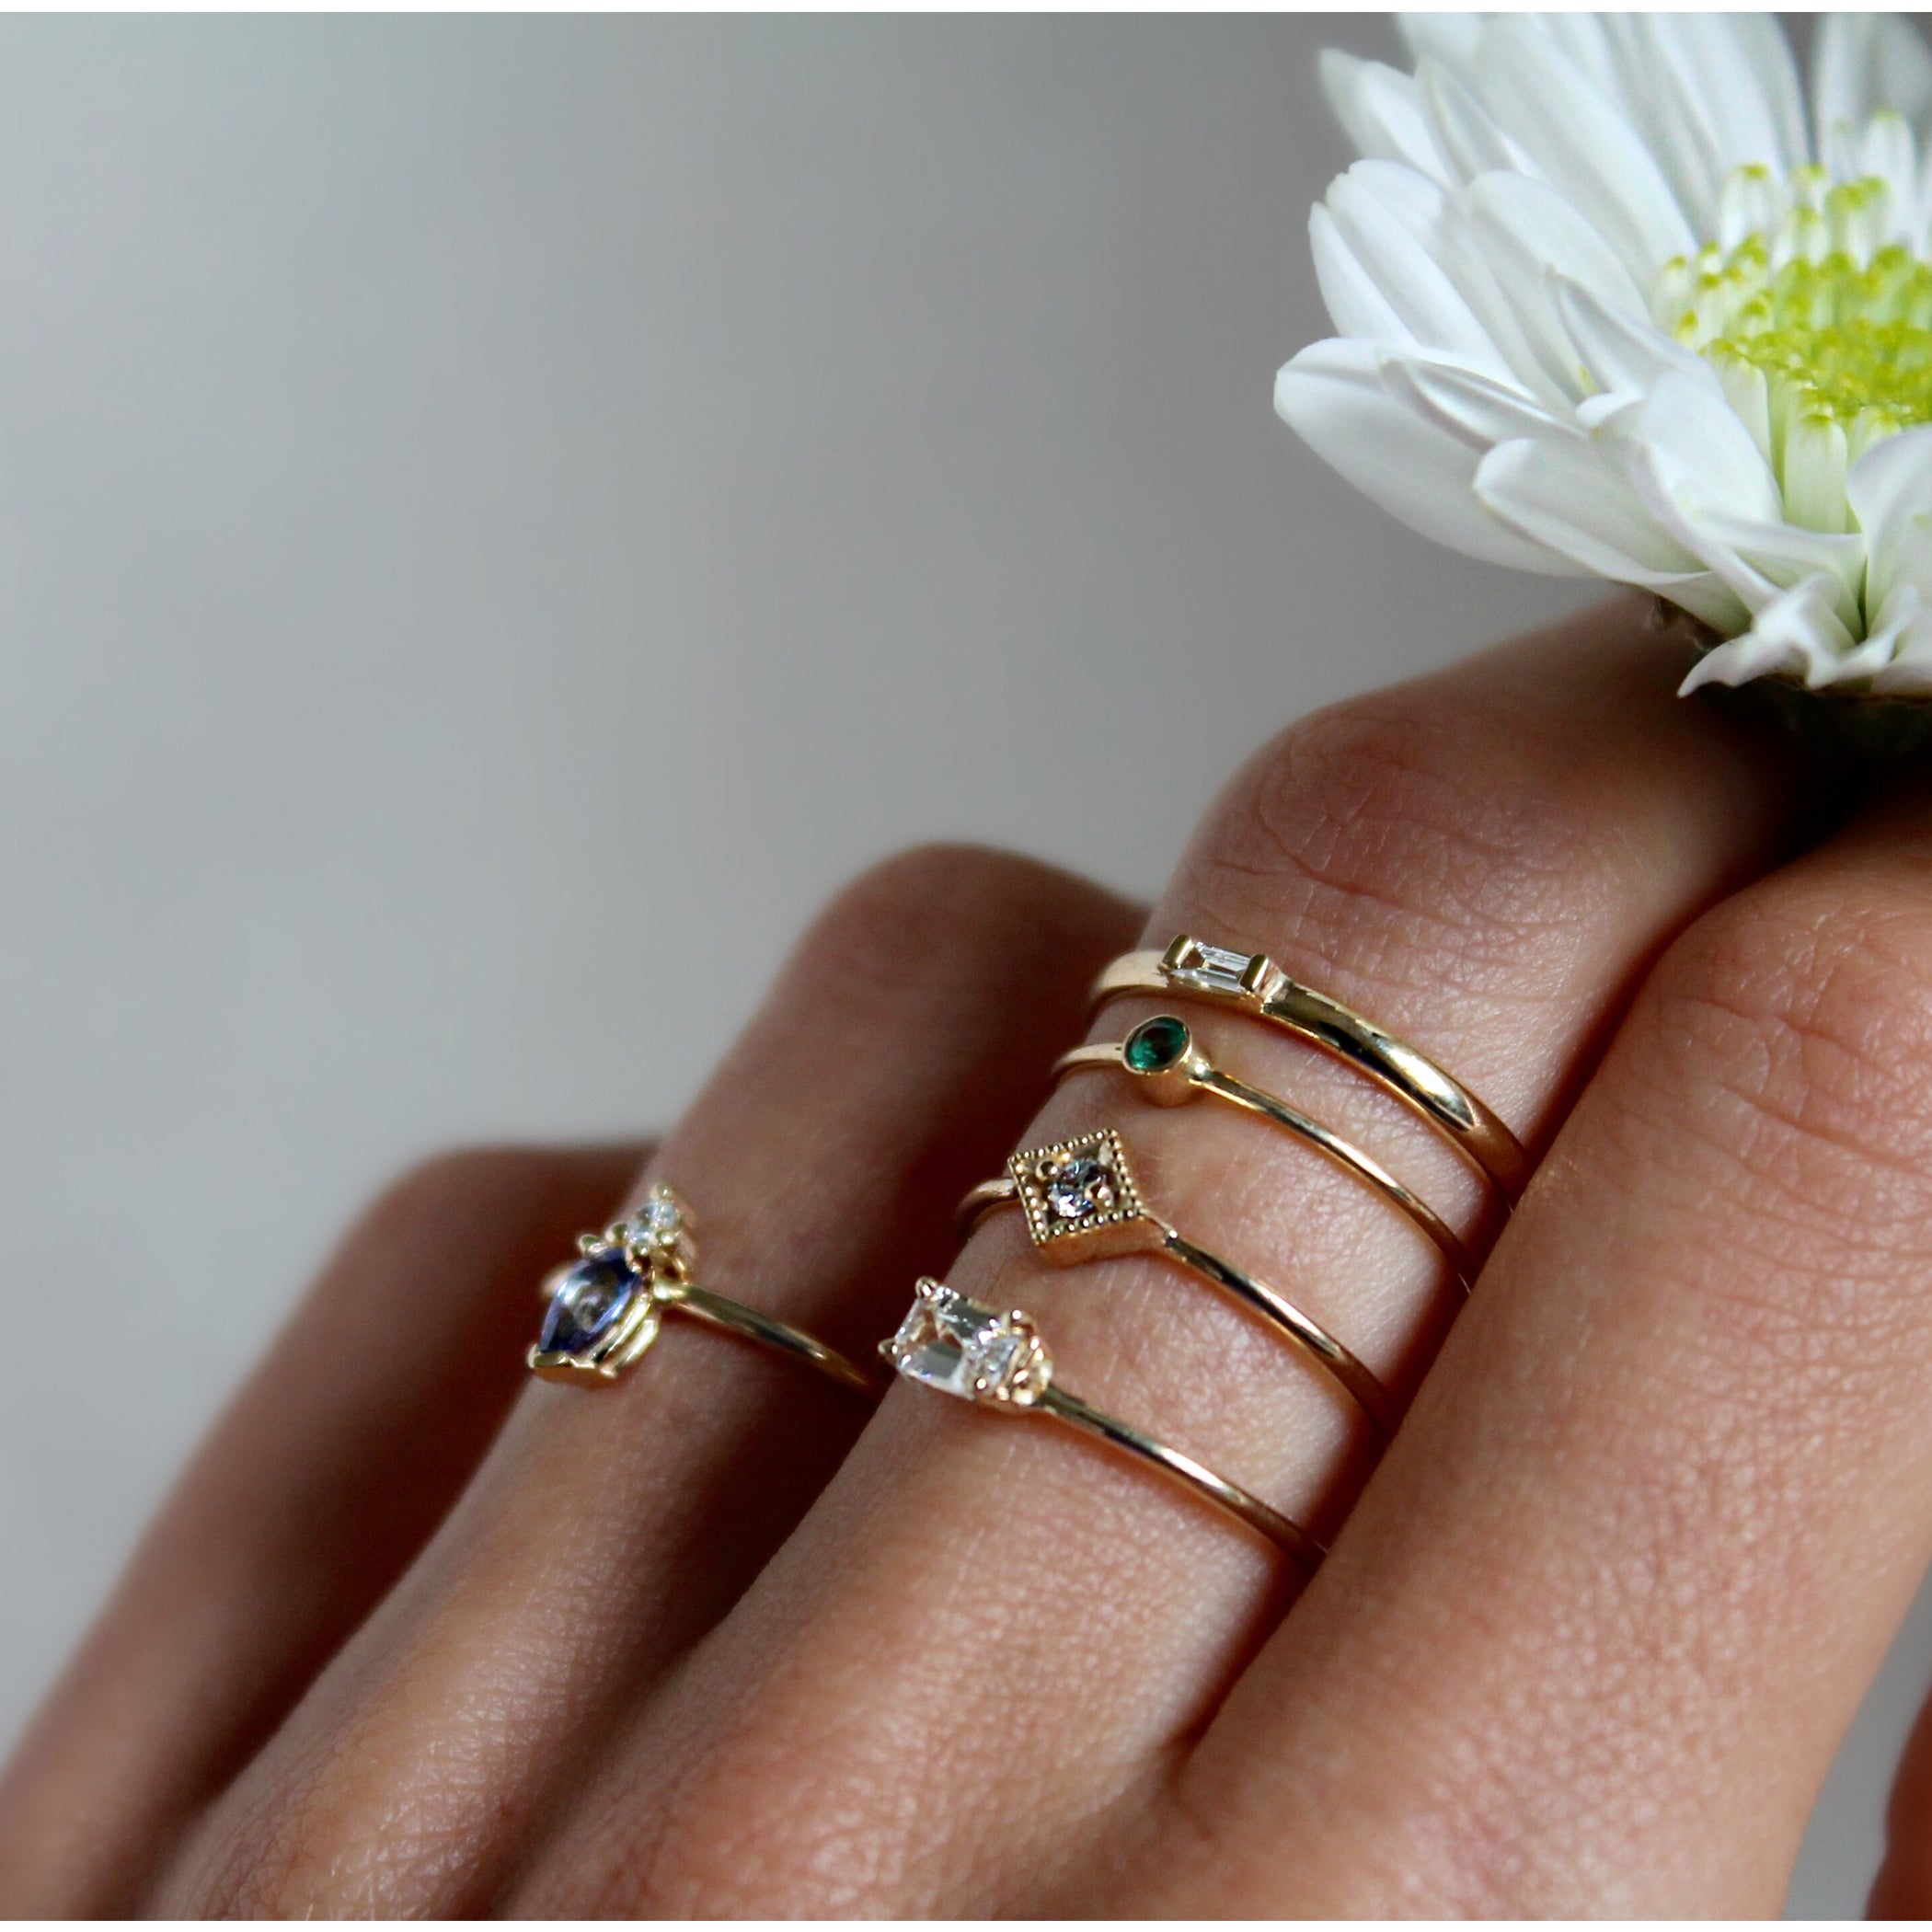 baguette stacking products ring rings diamond atheria chloe bezel wedding by llc jewelry